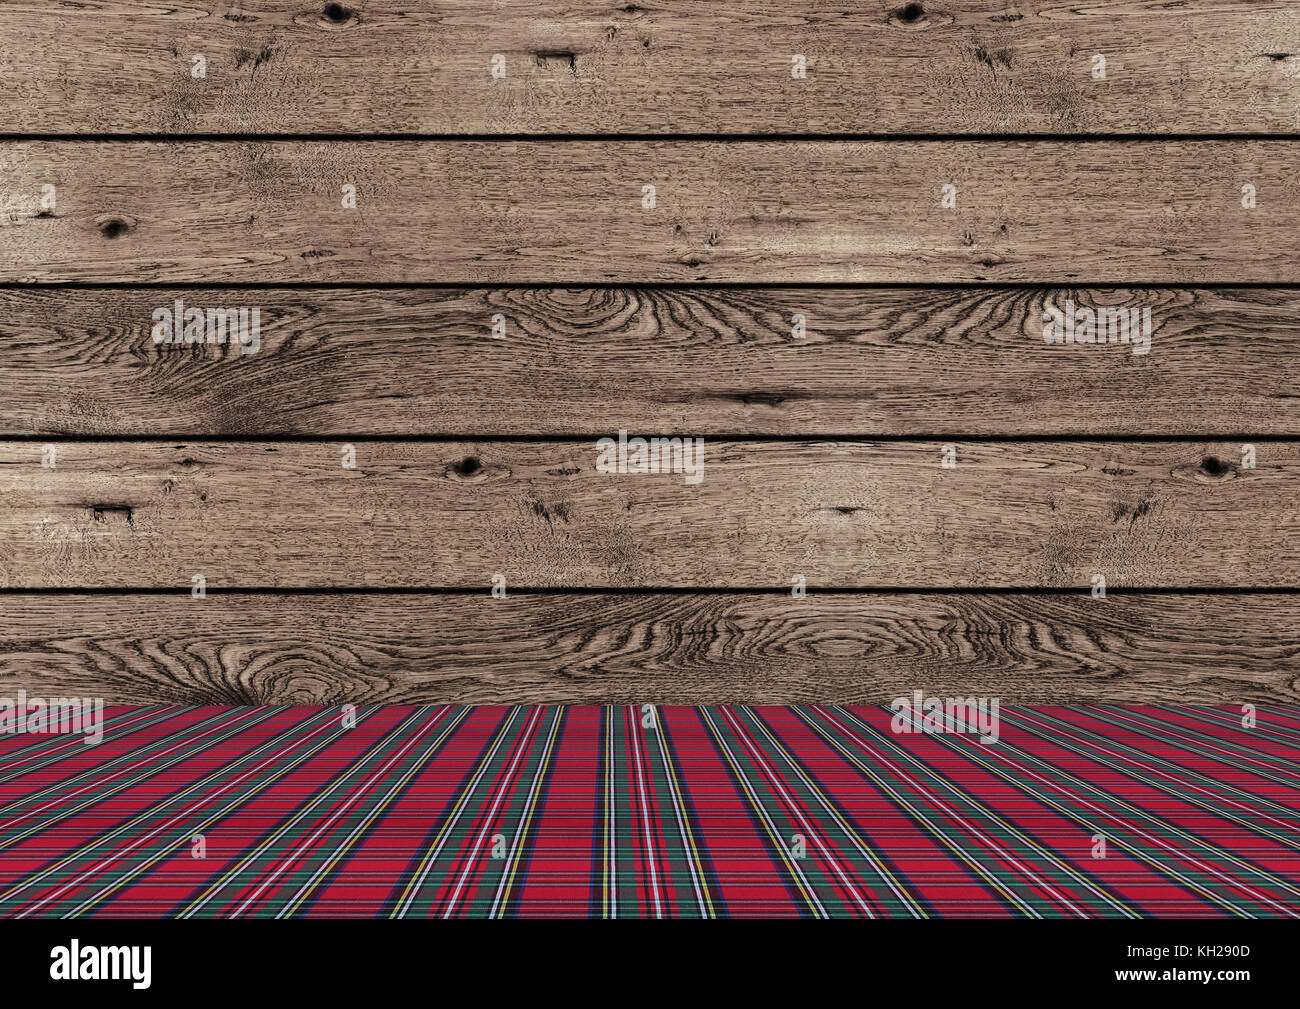 beautiful rustic tradional wooden Christmas background with red and green plaid pattern ground - Stock Image